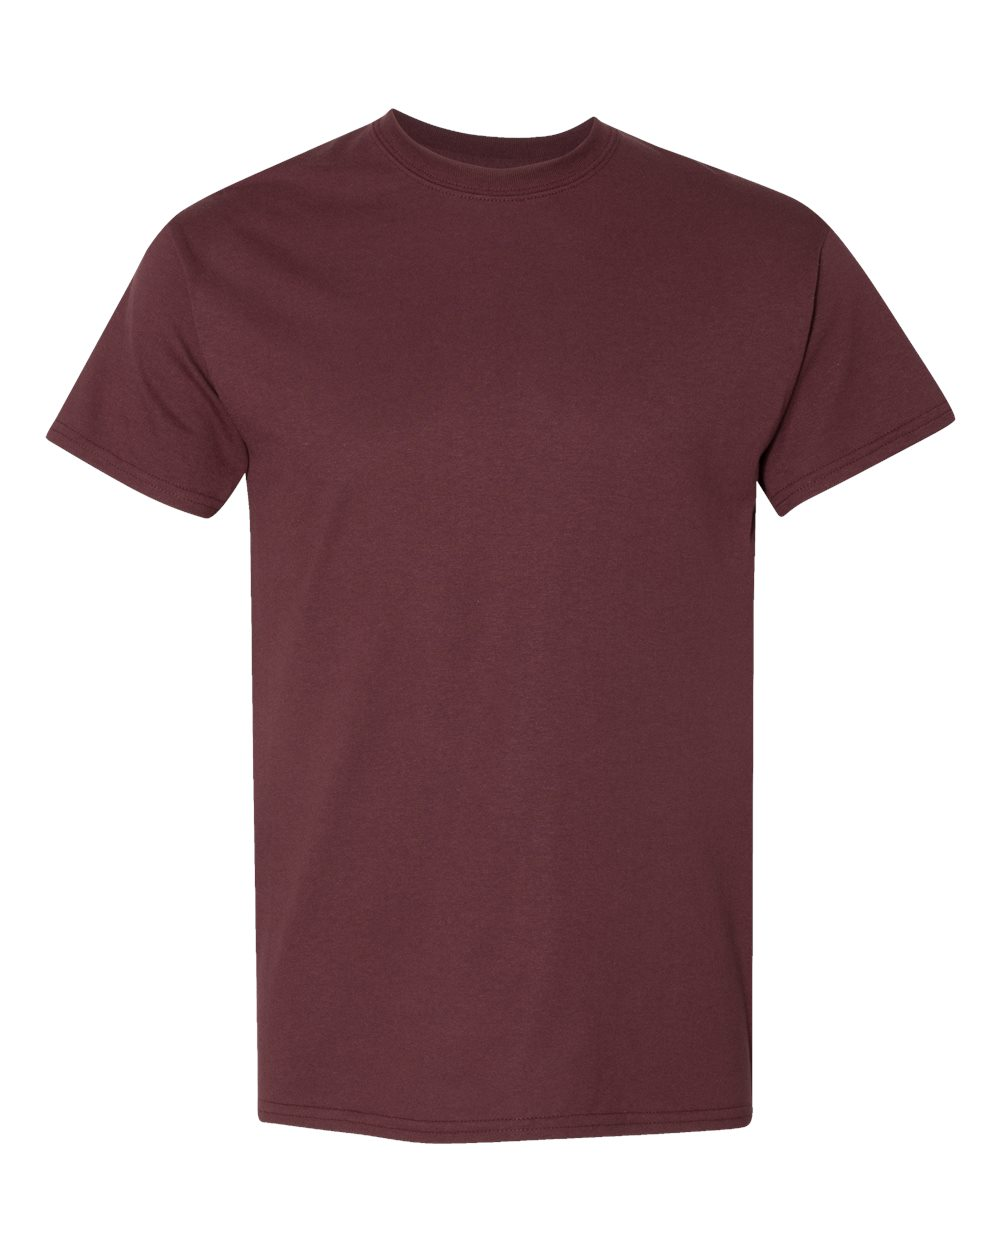 click to view Sport Dark Maroon